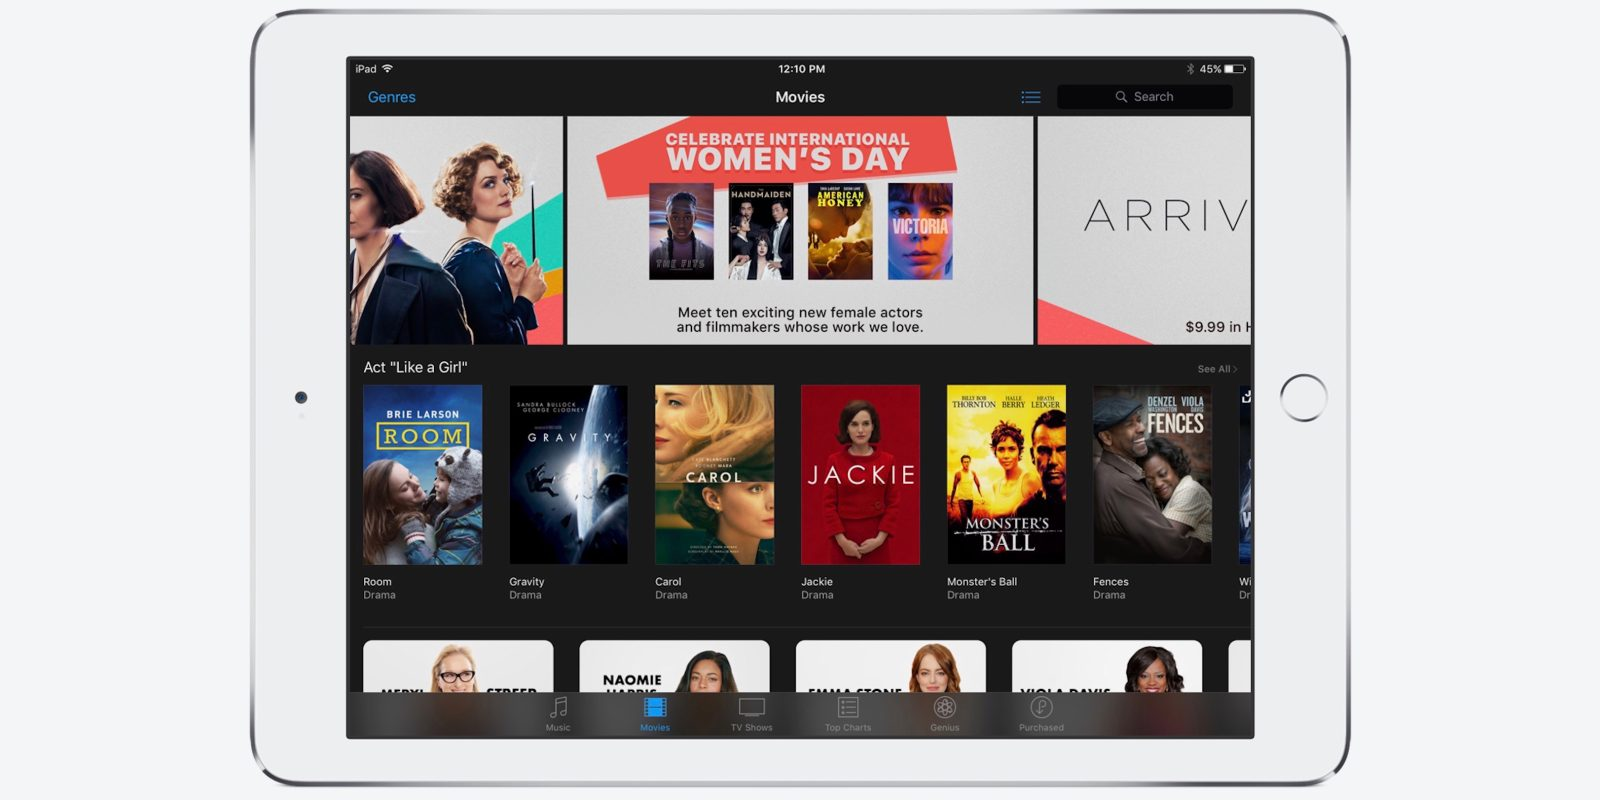 Apple Sees iTunes Market Share Slip as Competition Increases